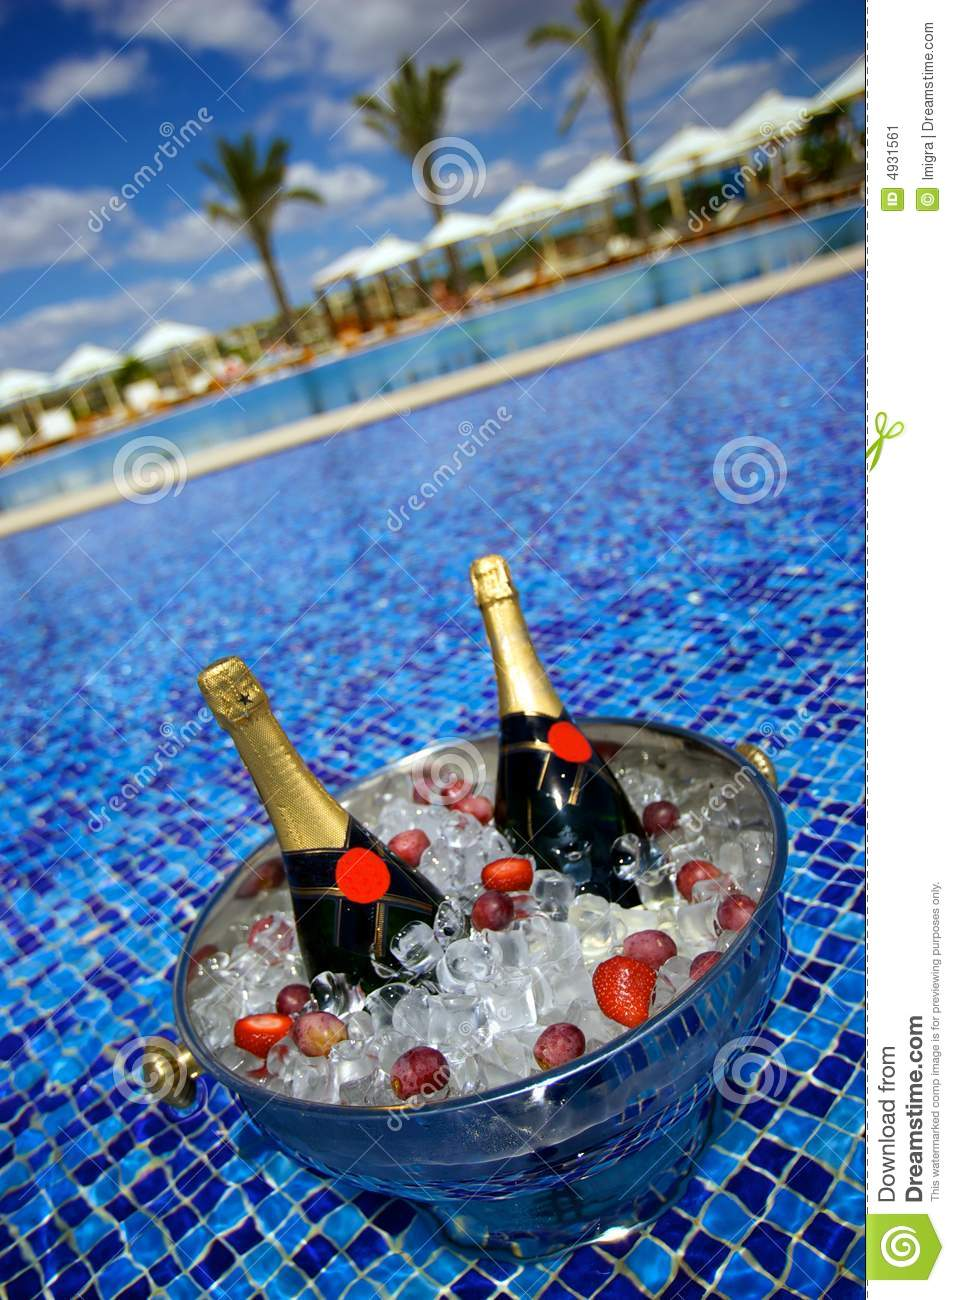 Champagne bottles on ice in a swimming pool stock image How to make swimming pool water drinkable